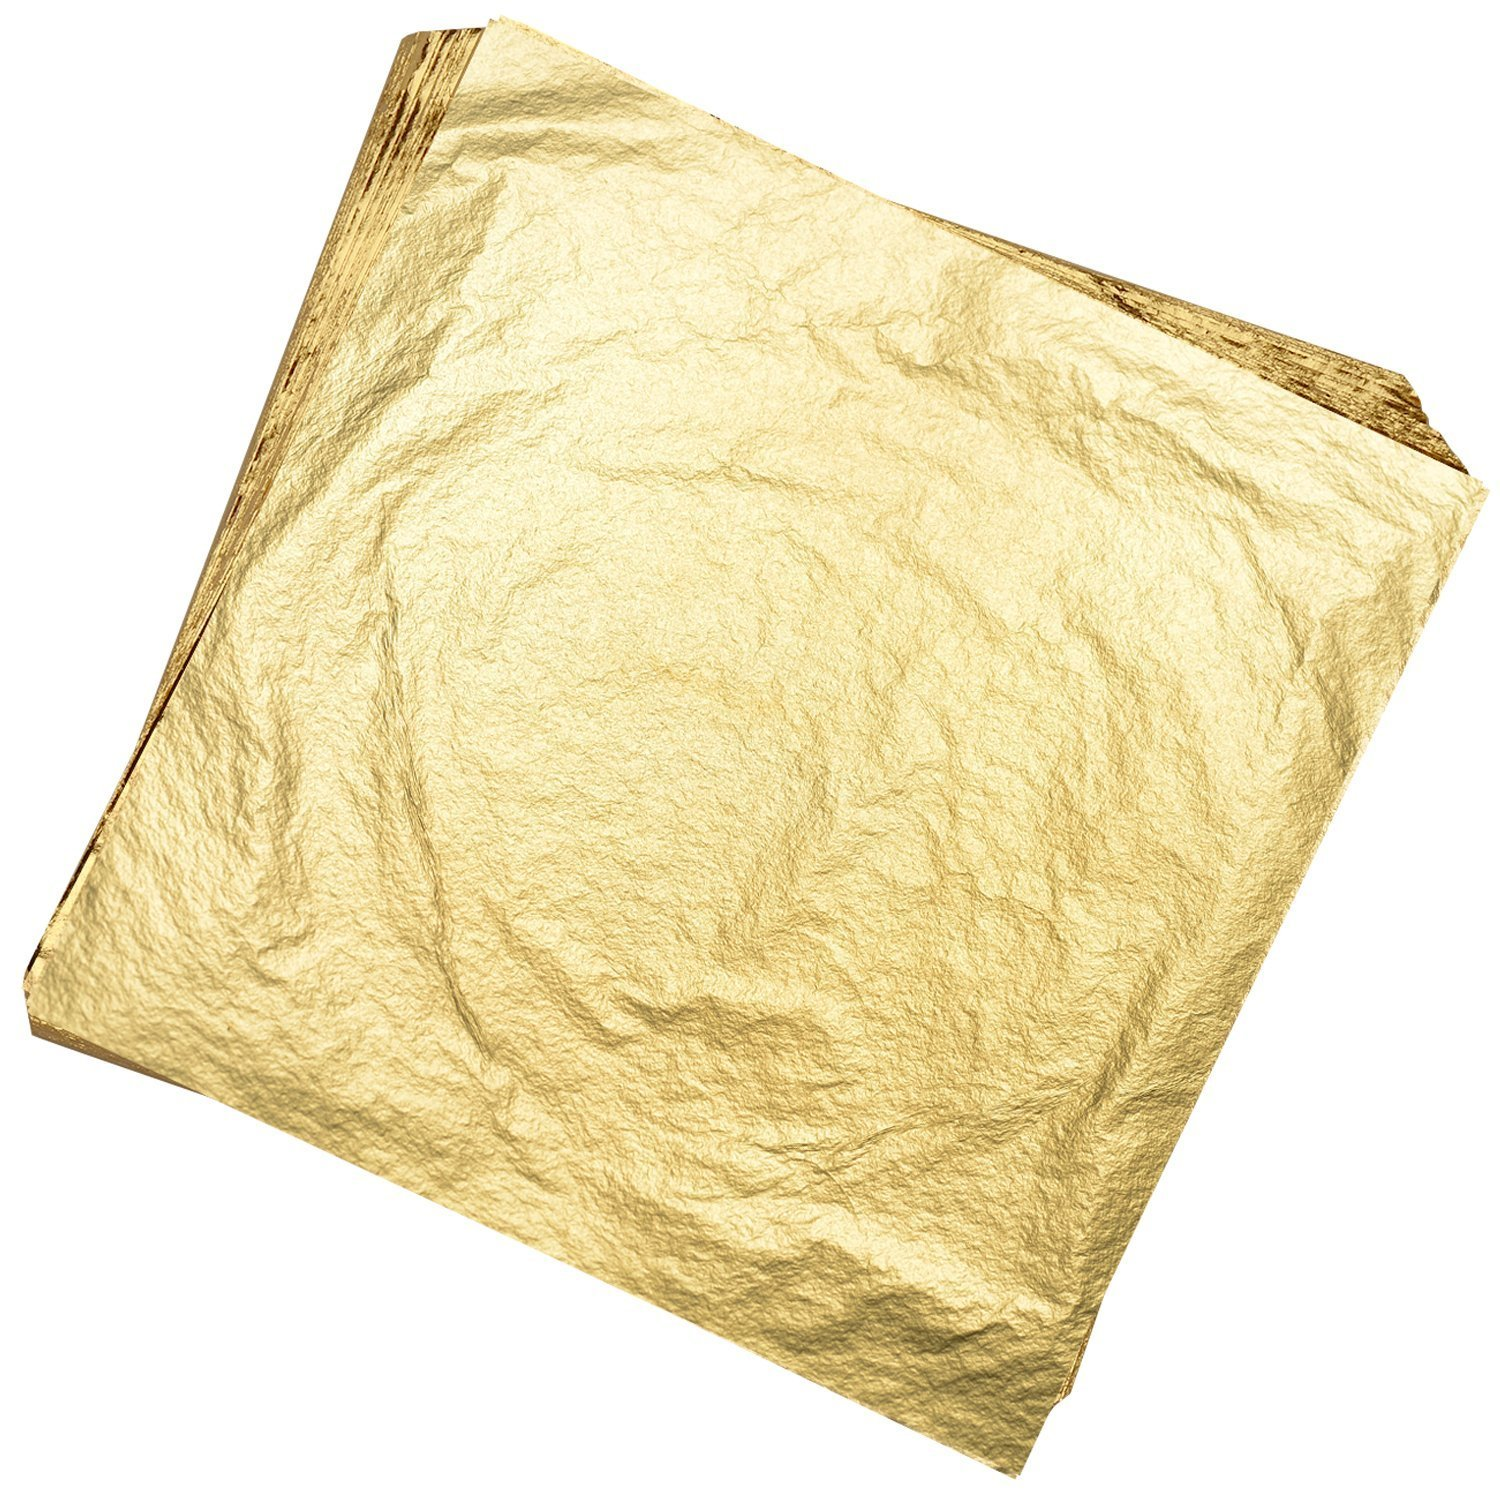 Gold Kixnor 100 Sheets Imitation Gold Leaf for Arts,Gilding Crafting,Decoration,Furniture,5.5 by 5.5 inches